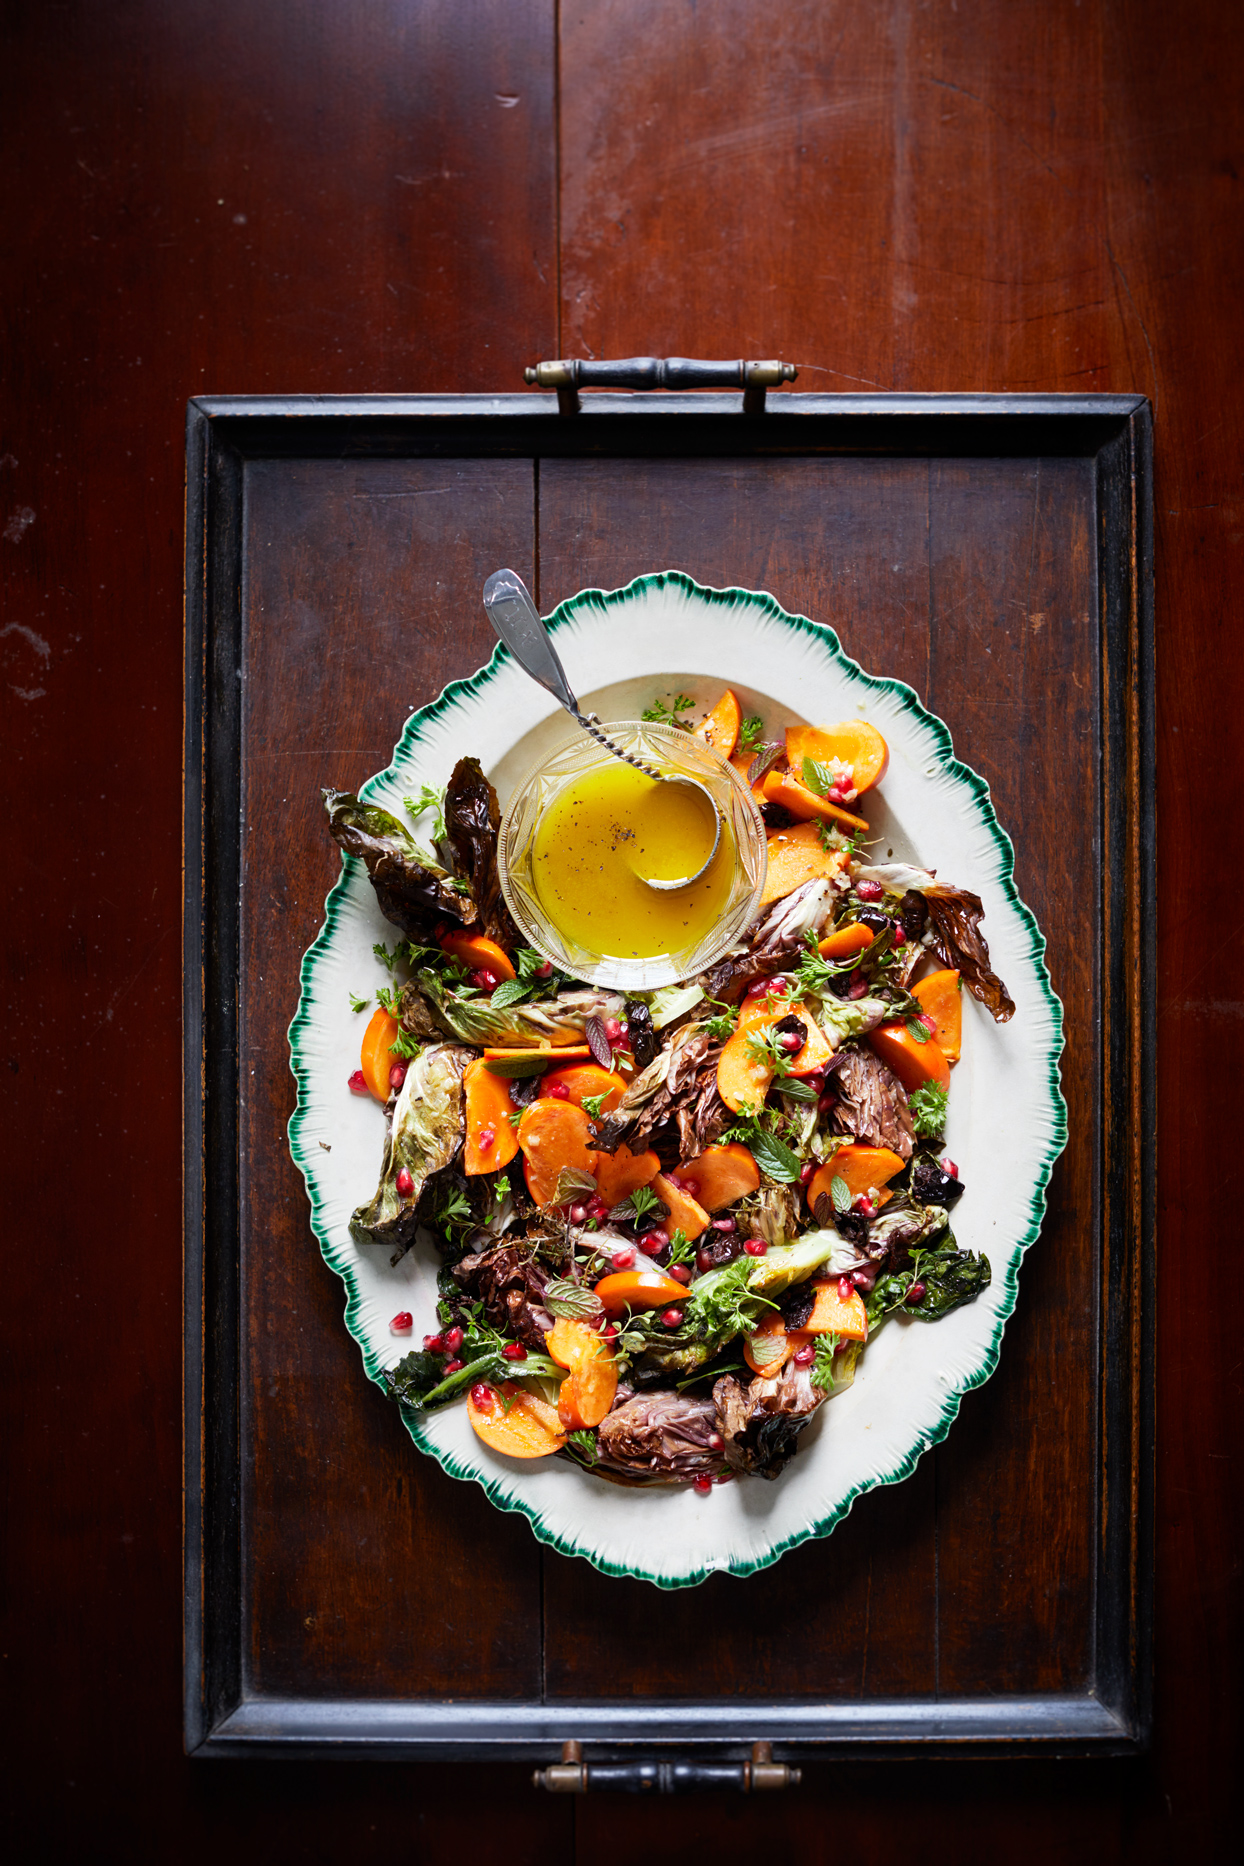 Persimmons and Roasted Chicories with Shallot Vinaigrette